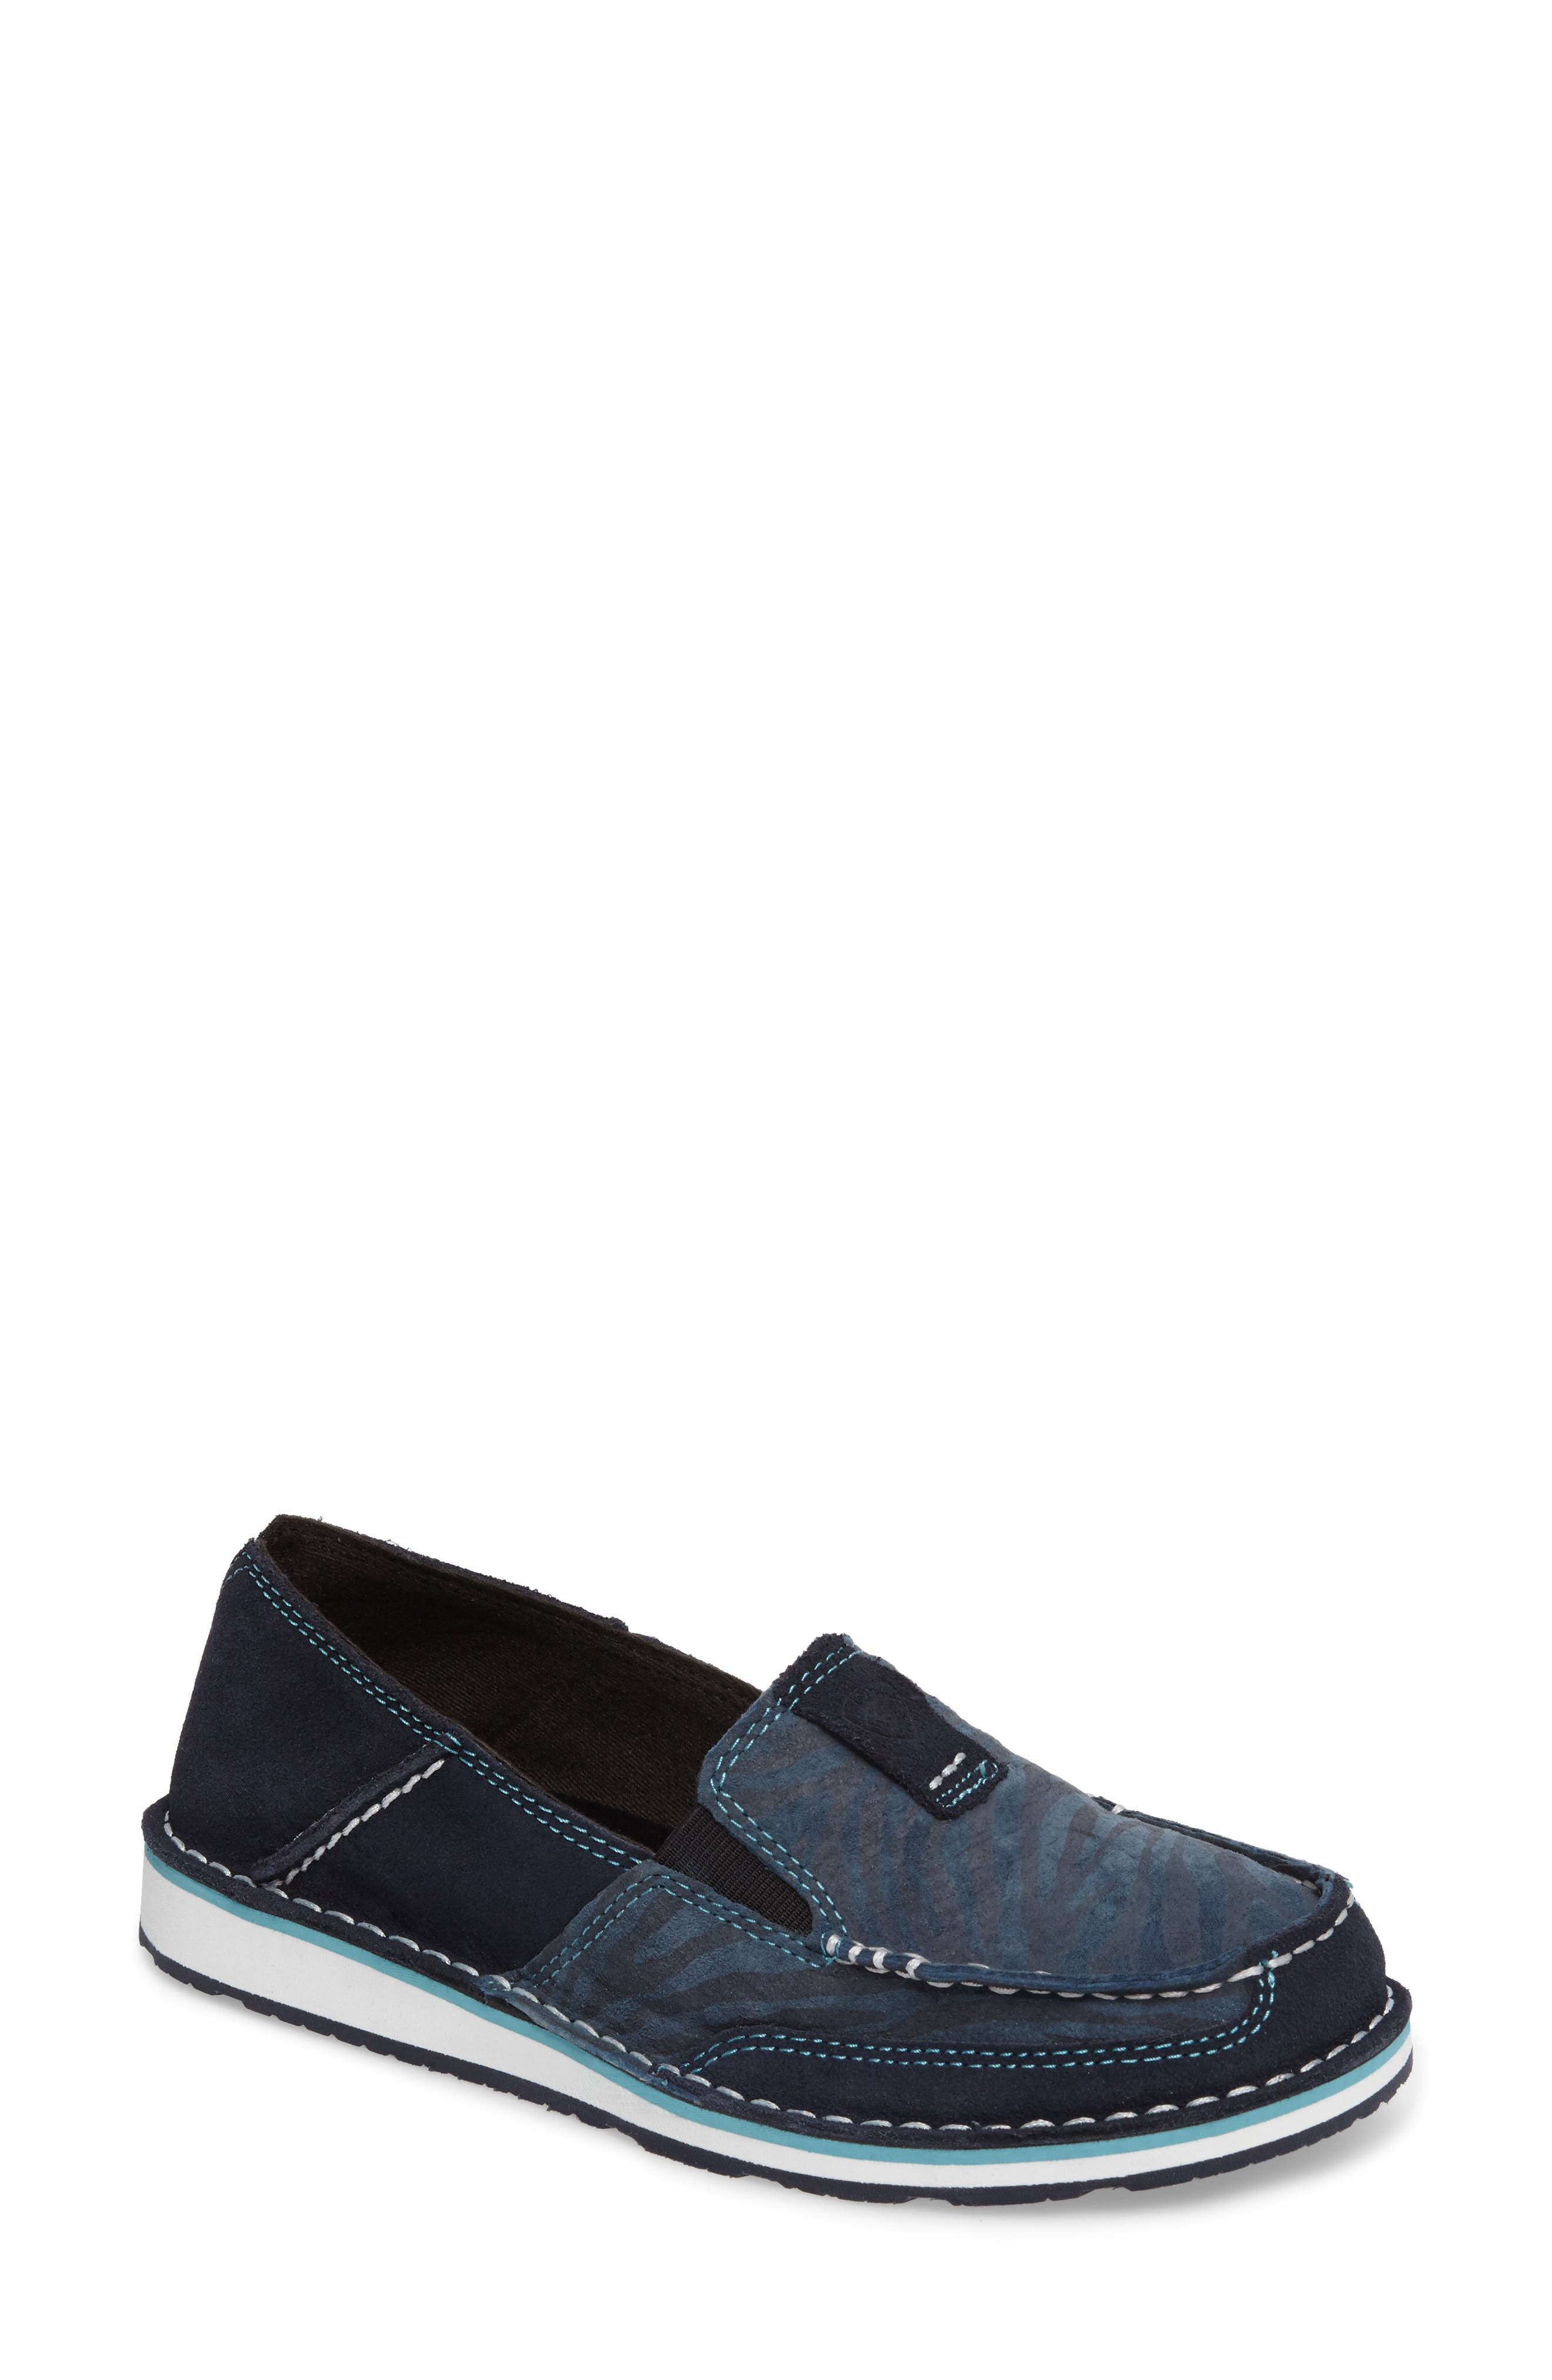 Ariat Cruiser Slip-On Loafer (Women)